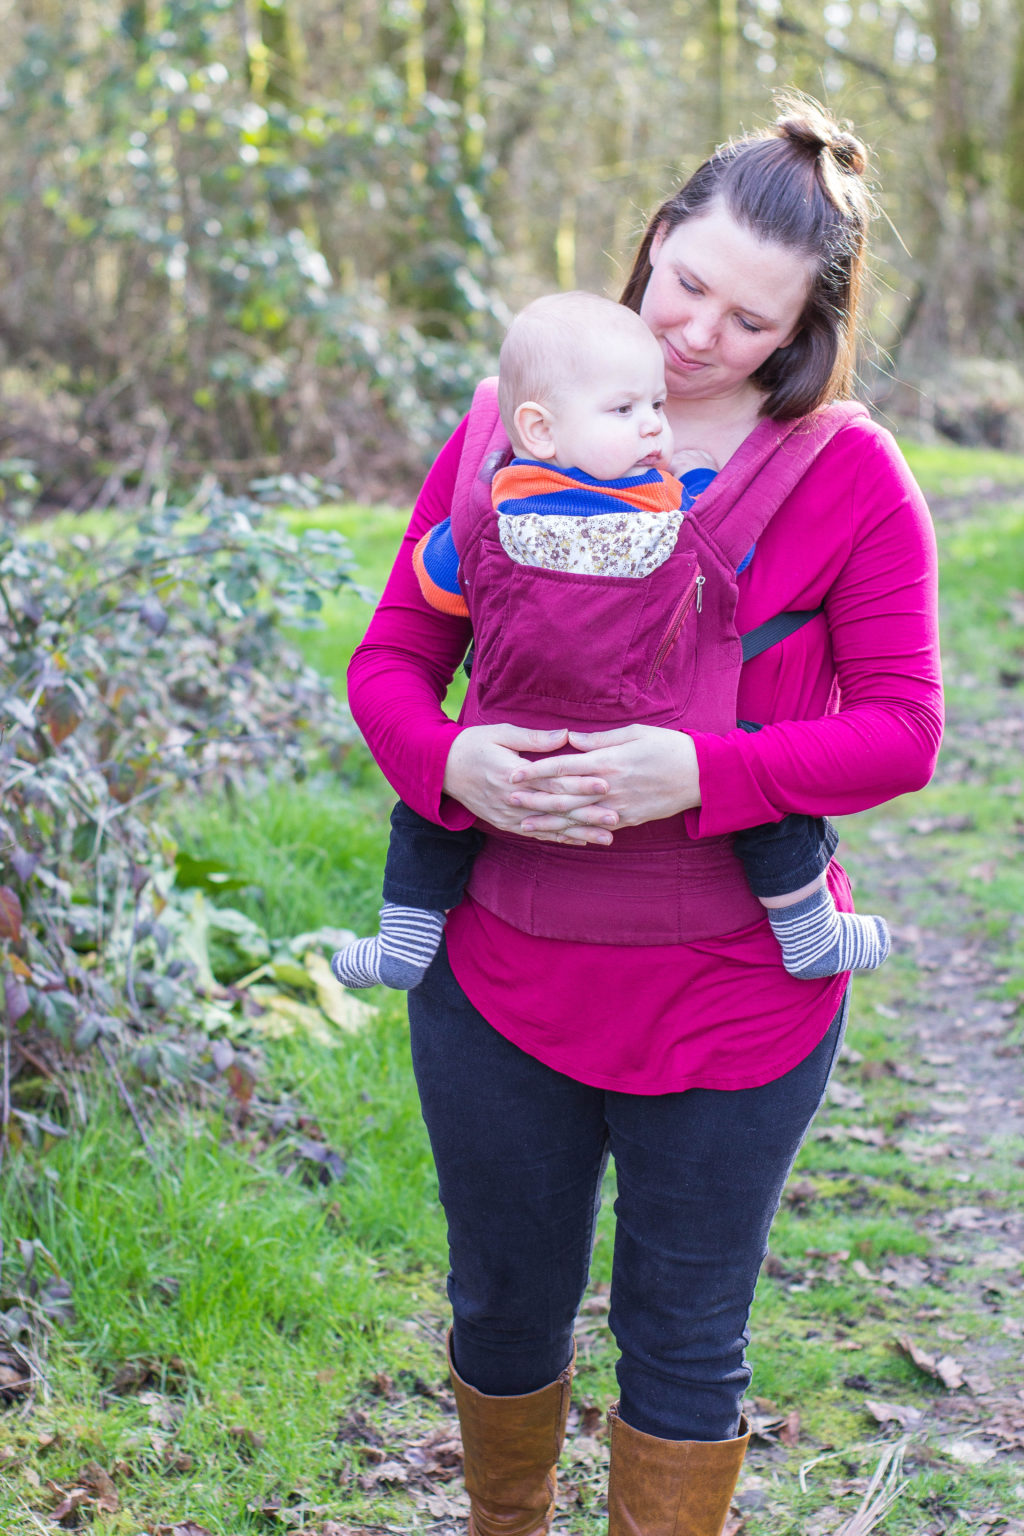 There are so many benefits of babywearing for both you and your baby